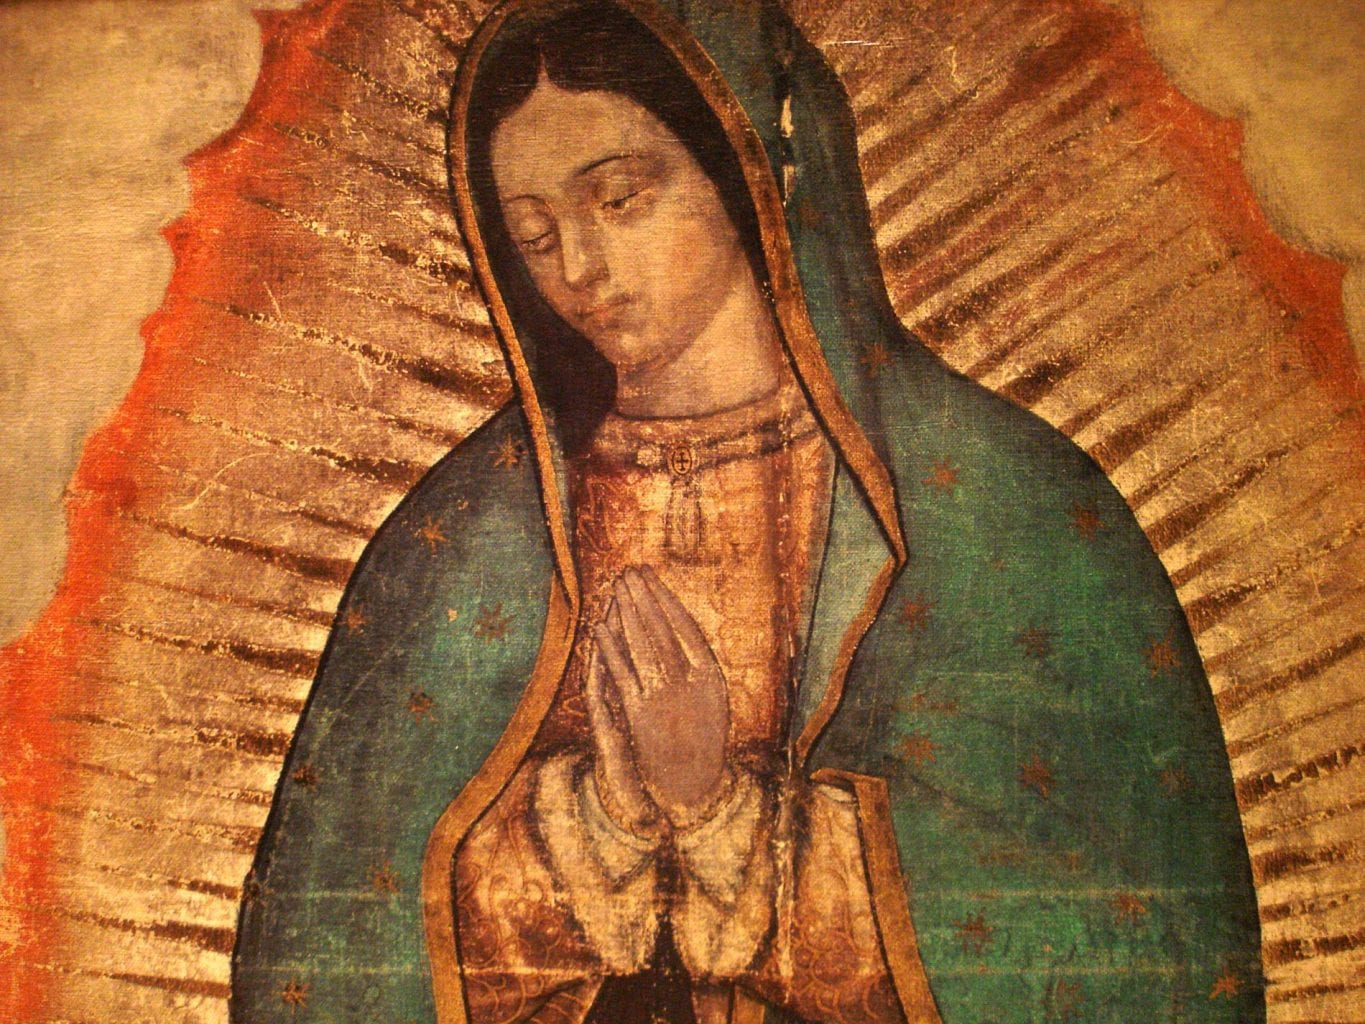 1531 Our Lady of Guadalupe appeared Juan Diego Tepeyac hill Mexico apparition Nican Mopohua Huei Tlamahuitzoltica antonio valeriano luis de la vega december 12 feast